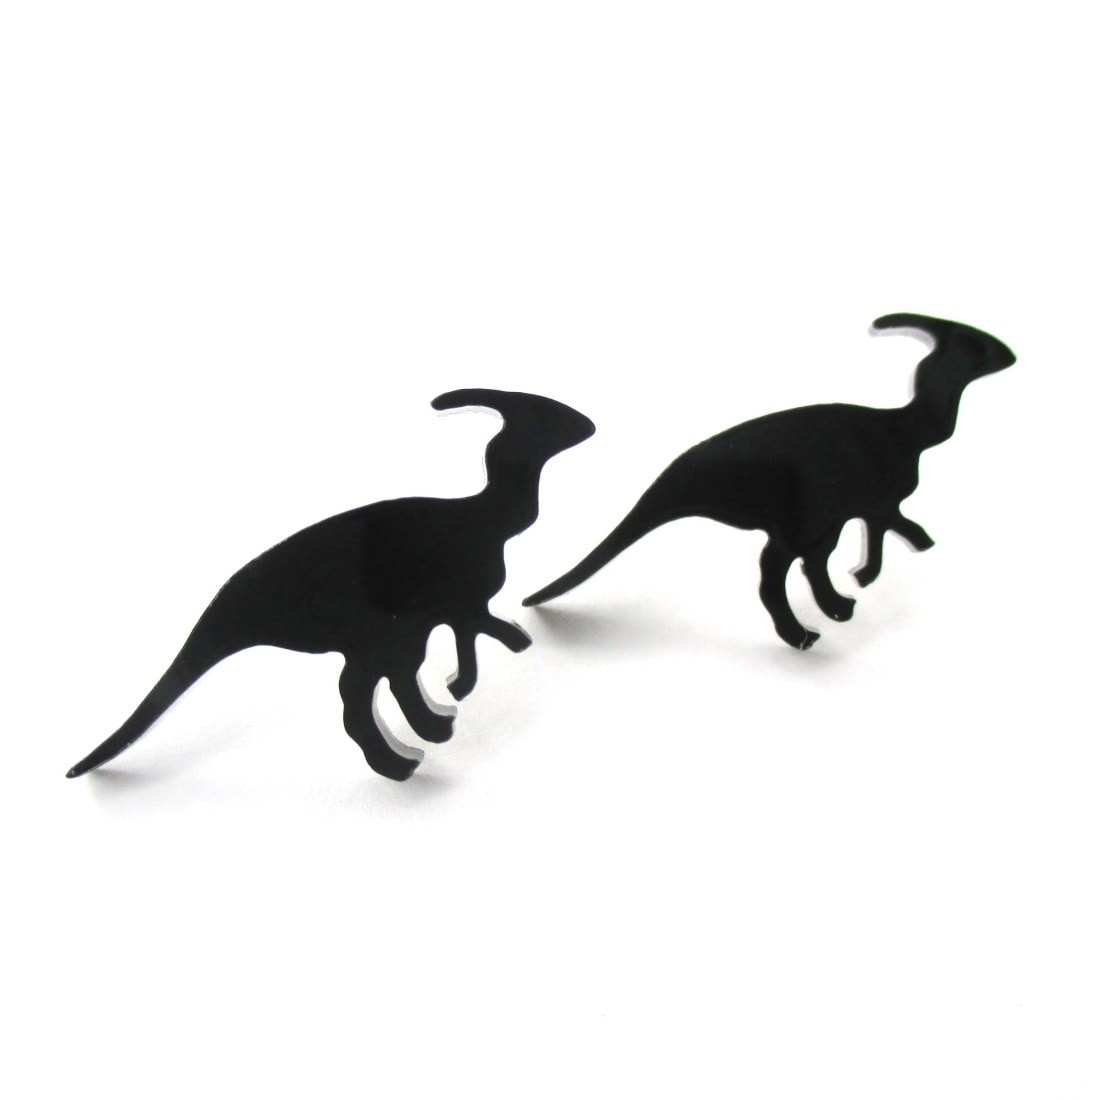 Parasaurolphus Silhouette Dinosaur Shaped Laser Cut Stud Earrings